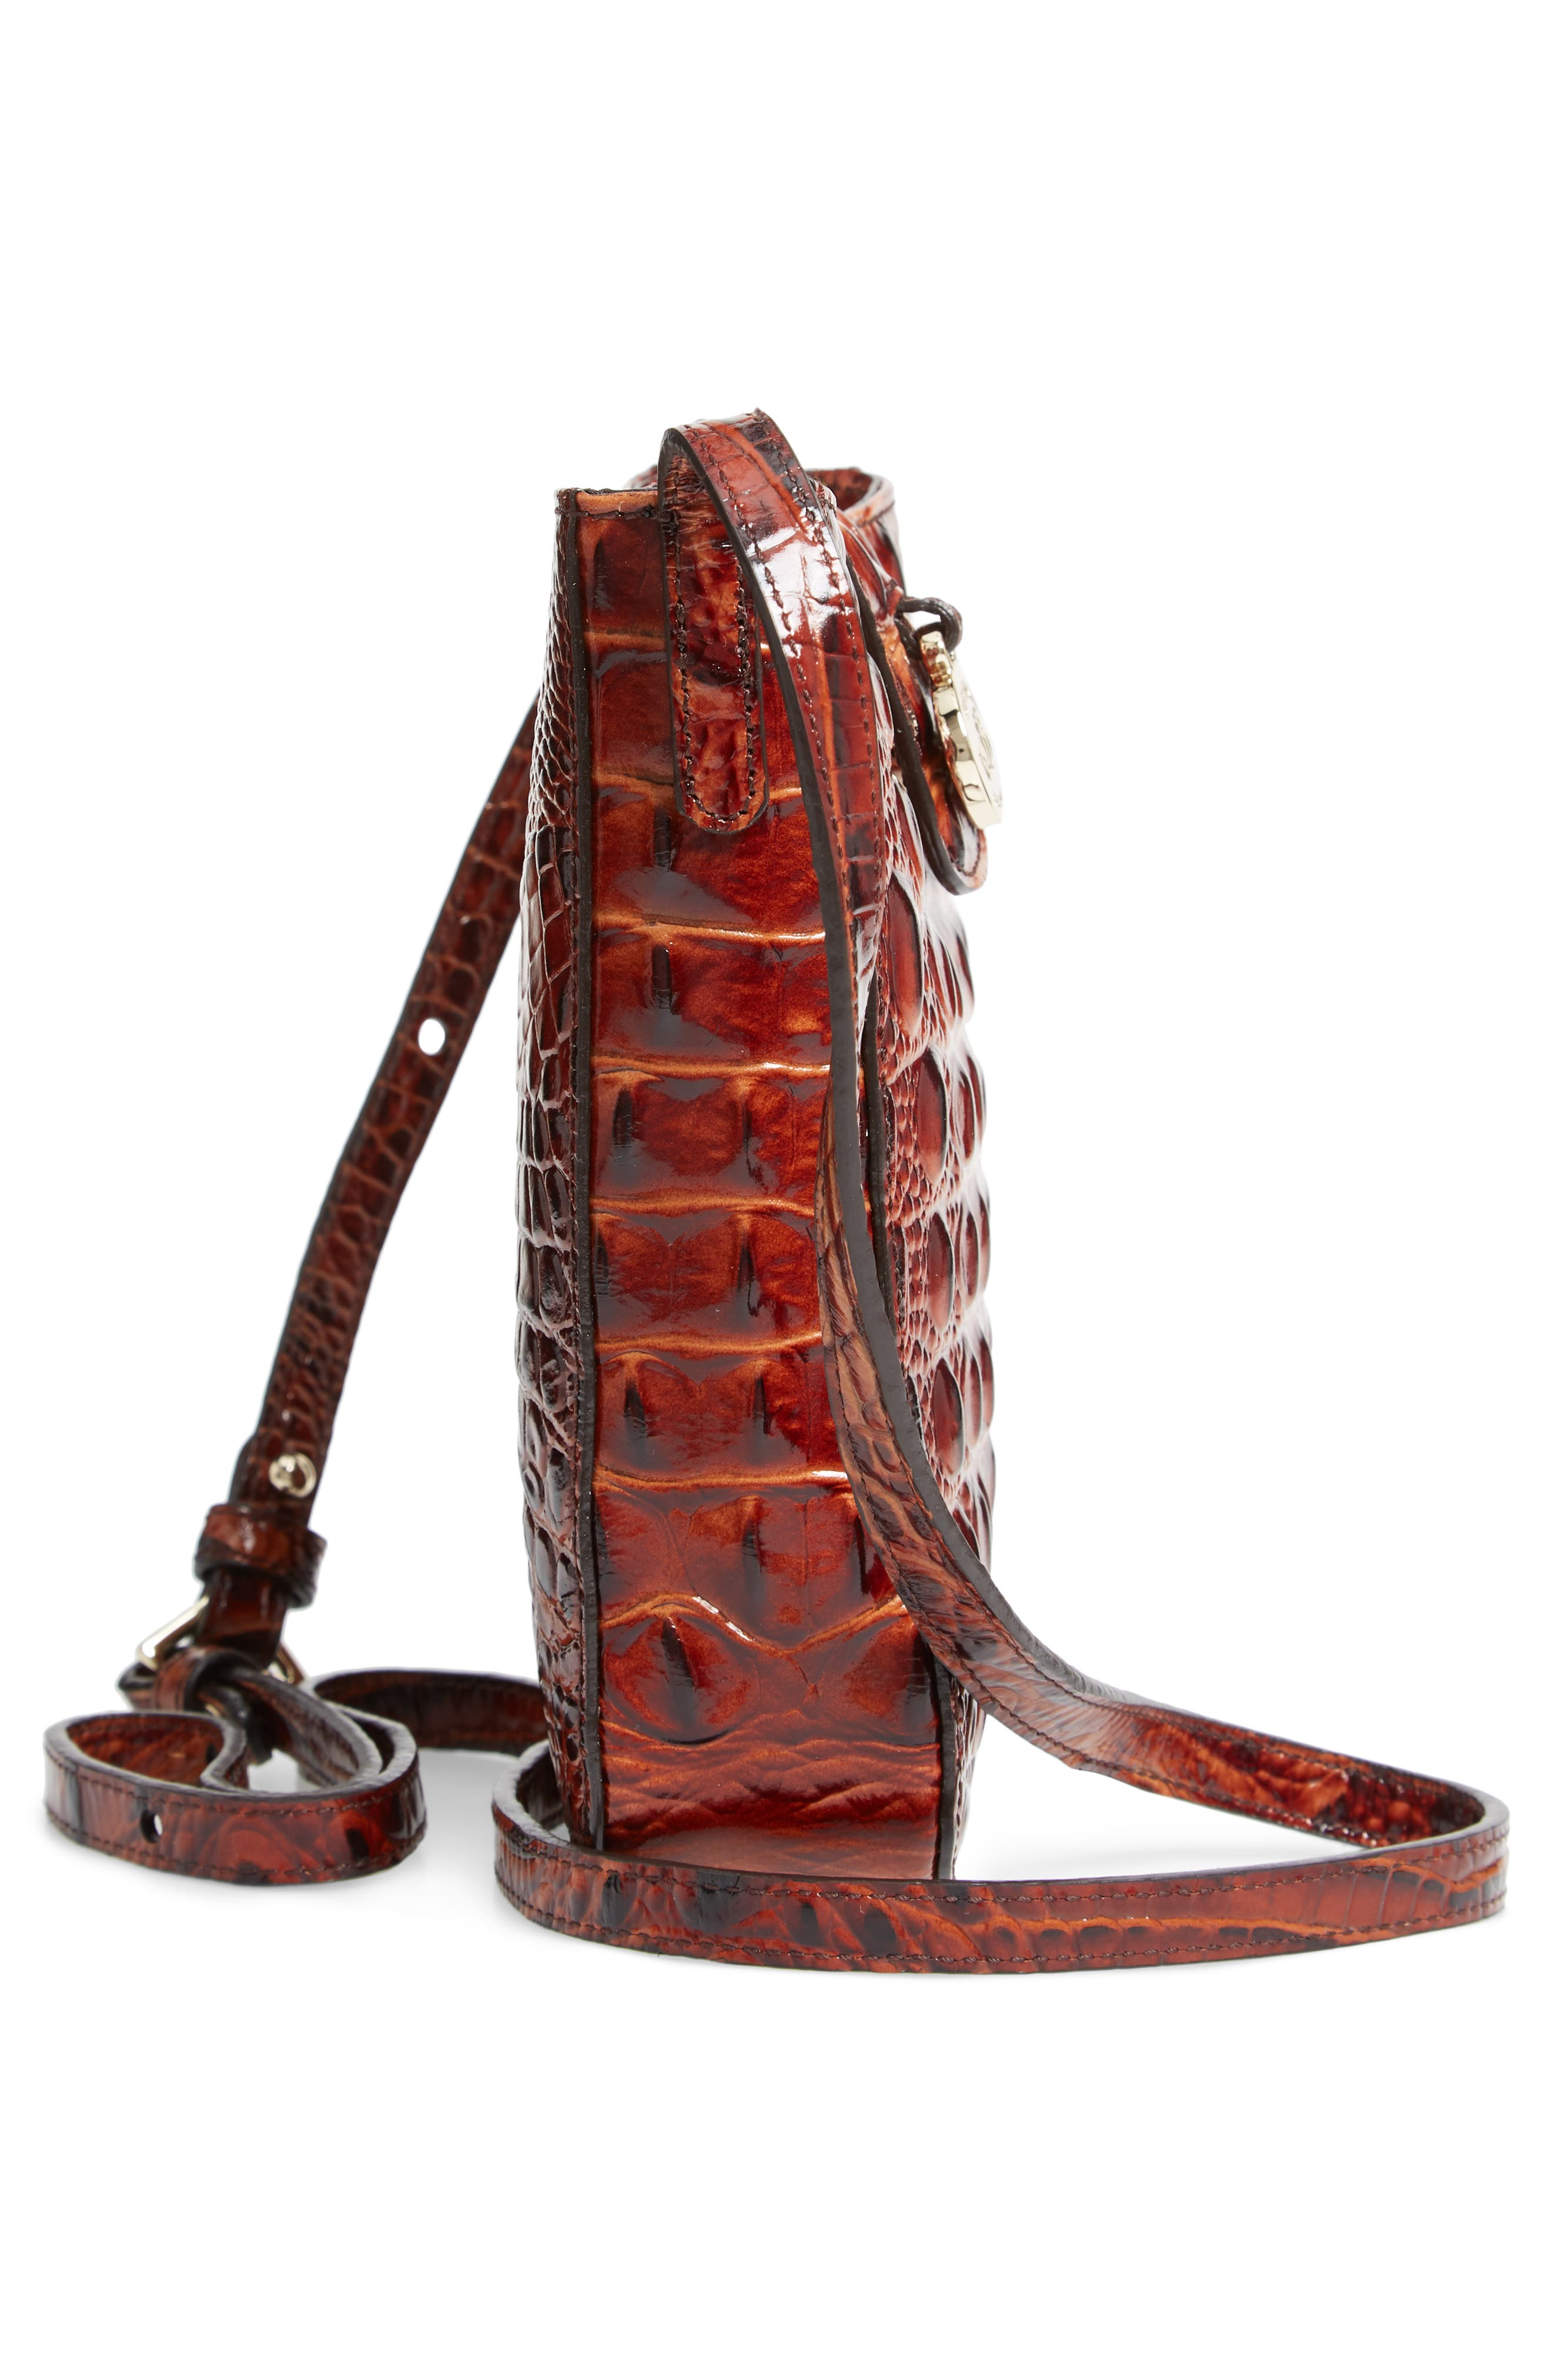 Marley Croc Embossed Leather Crossbody Bag,                             Alternate thumbnail 5, color,                             PECAN